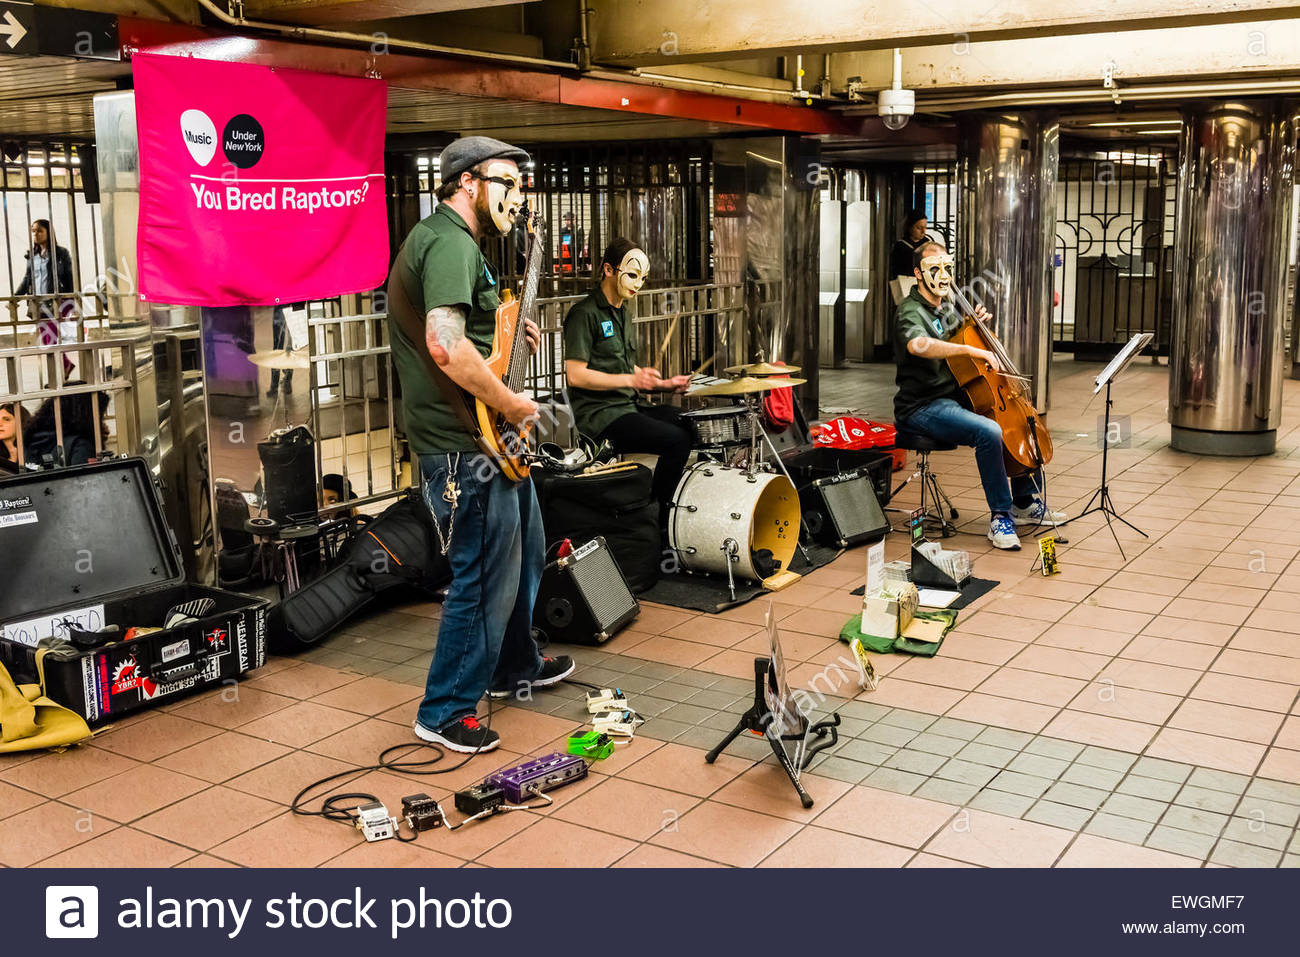 'You Bred Raptors' performing in the subway, New York, New York USA. - Stock Image